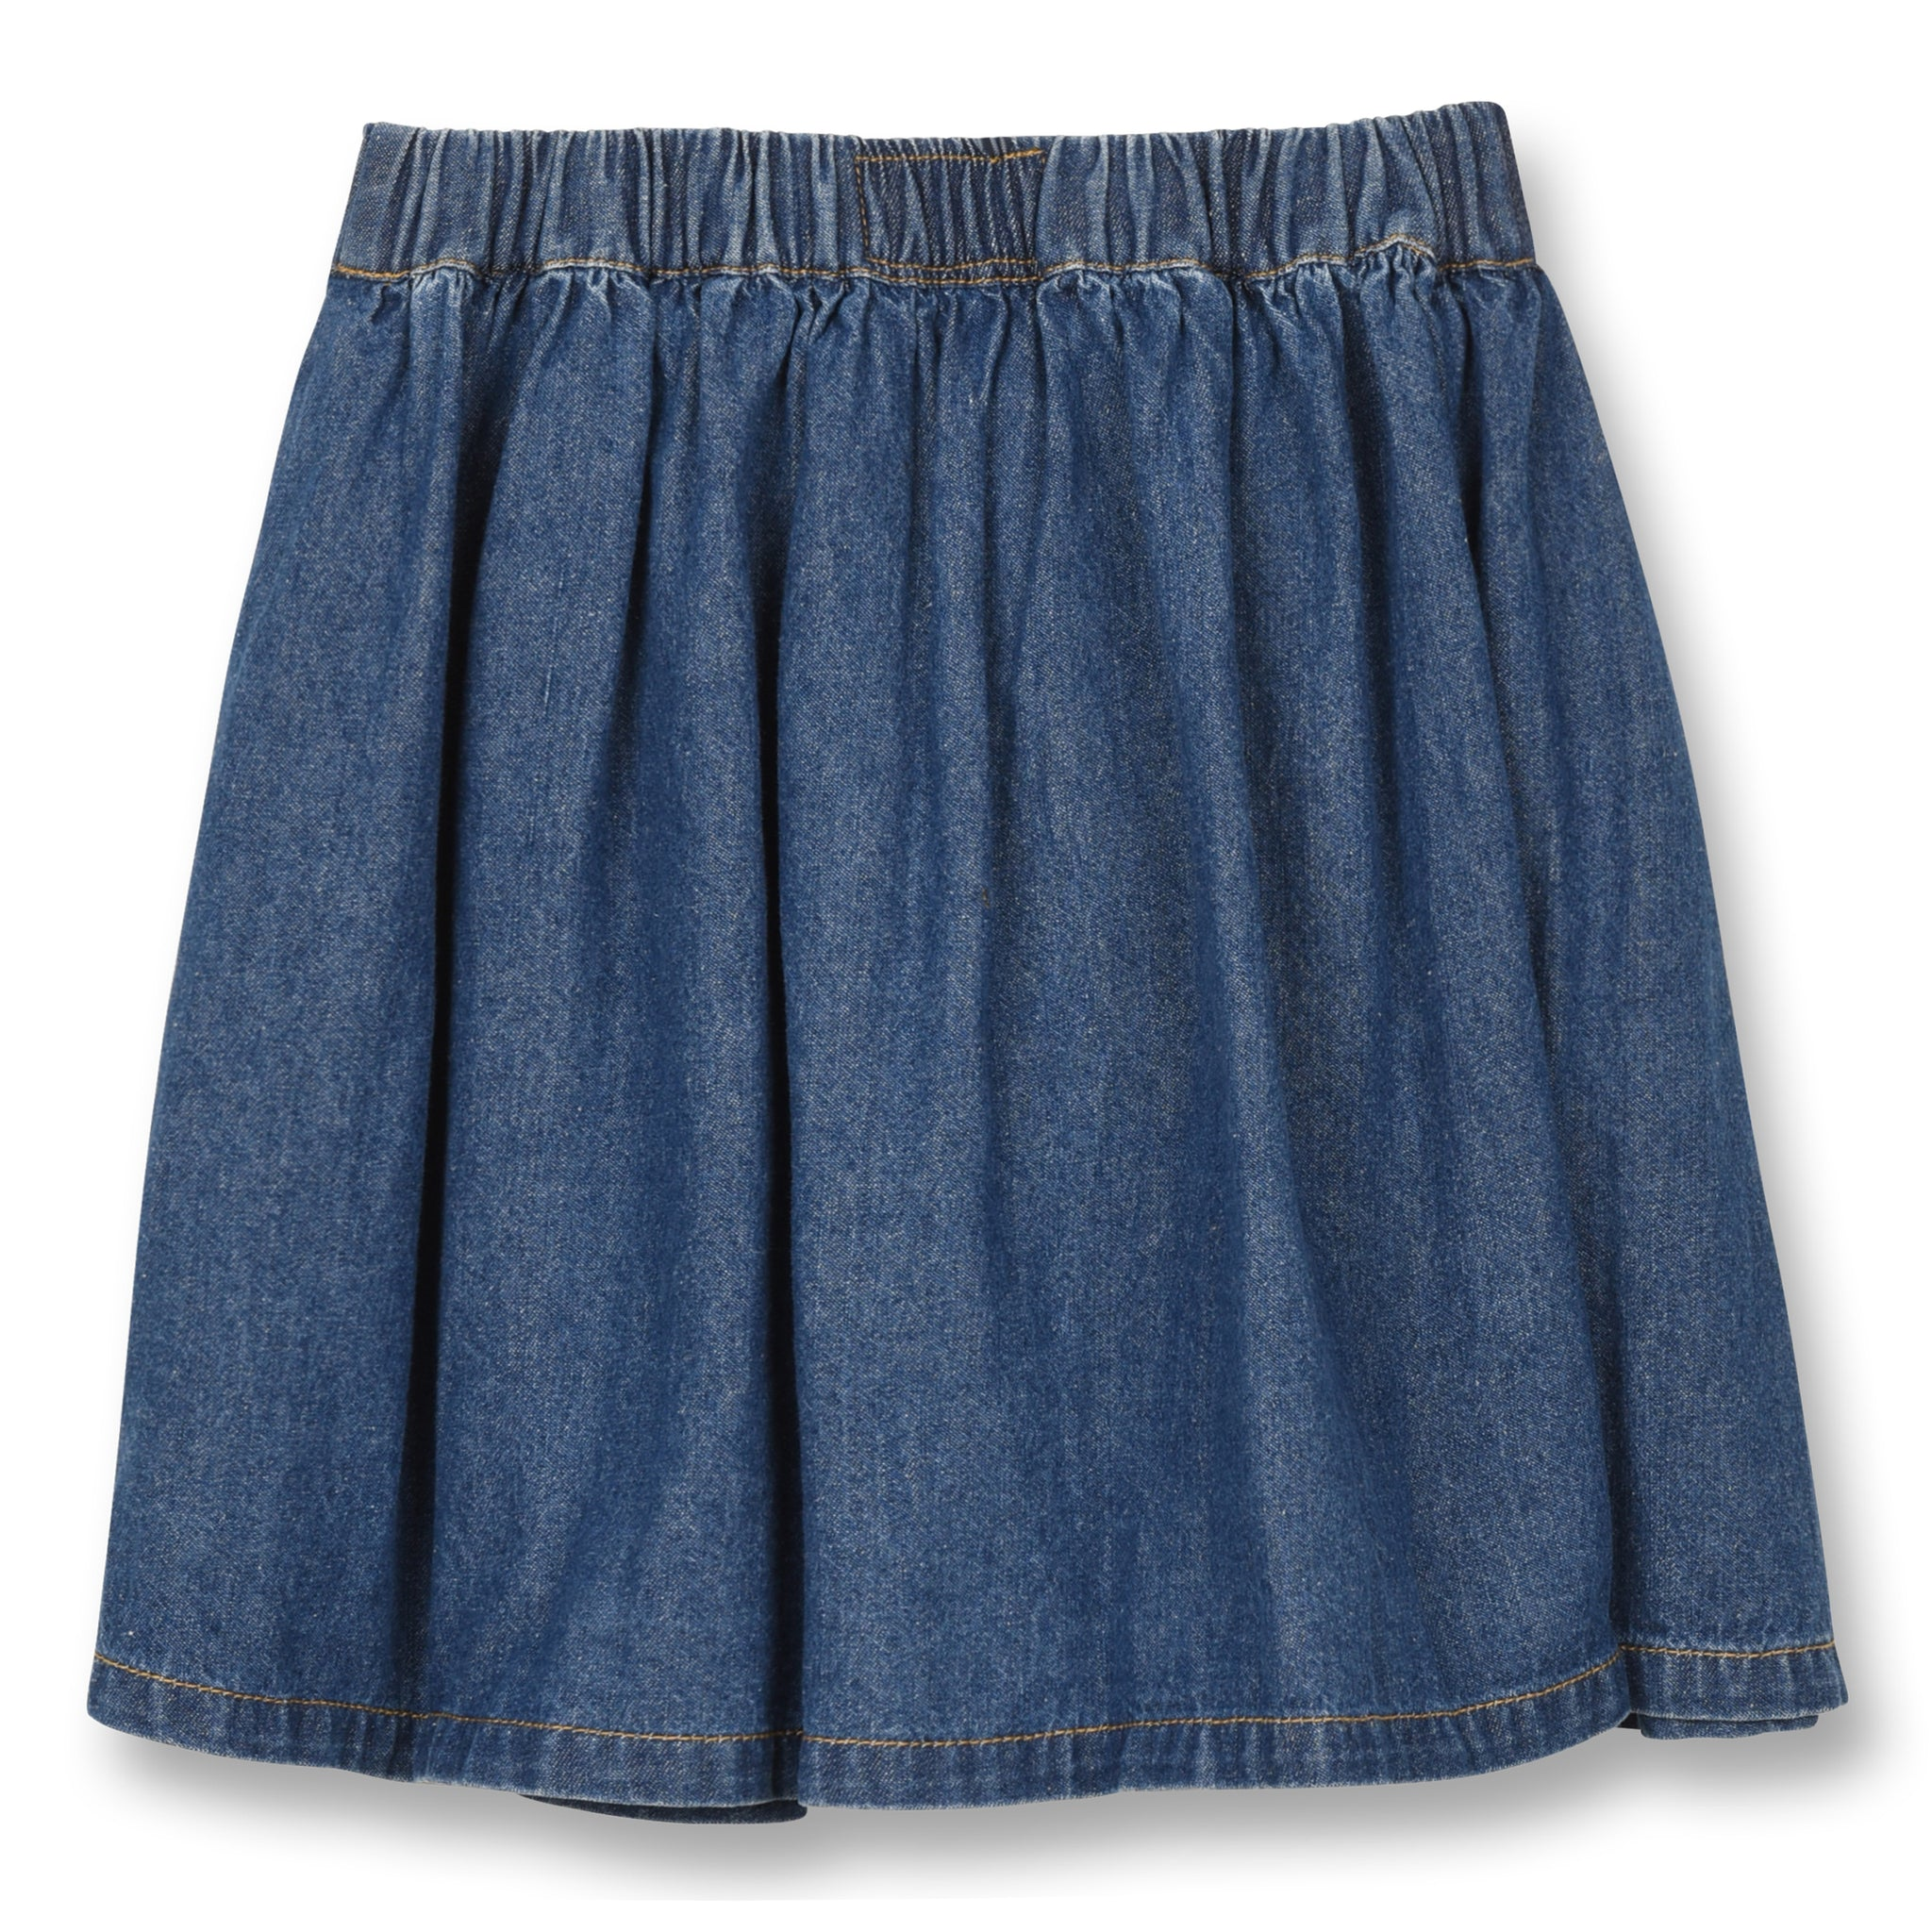 ASHBY Dark Blue Denim - Skirt 2